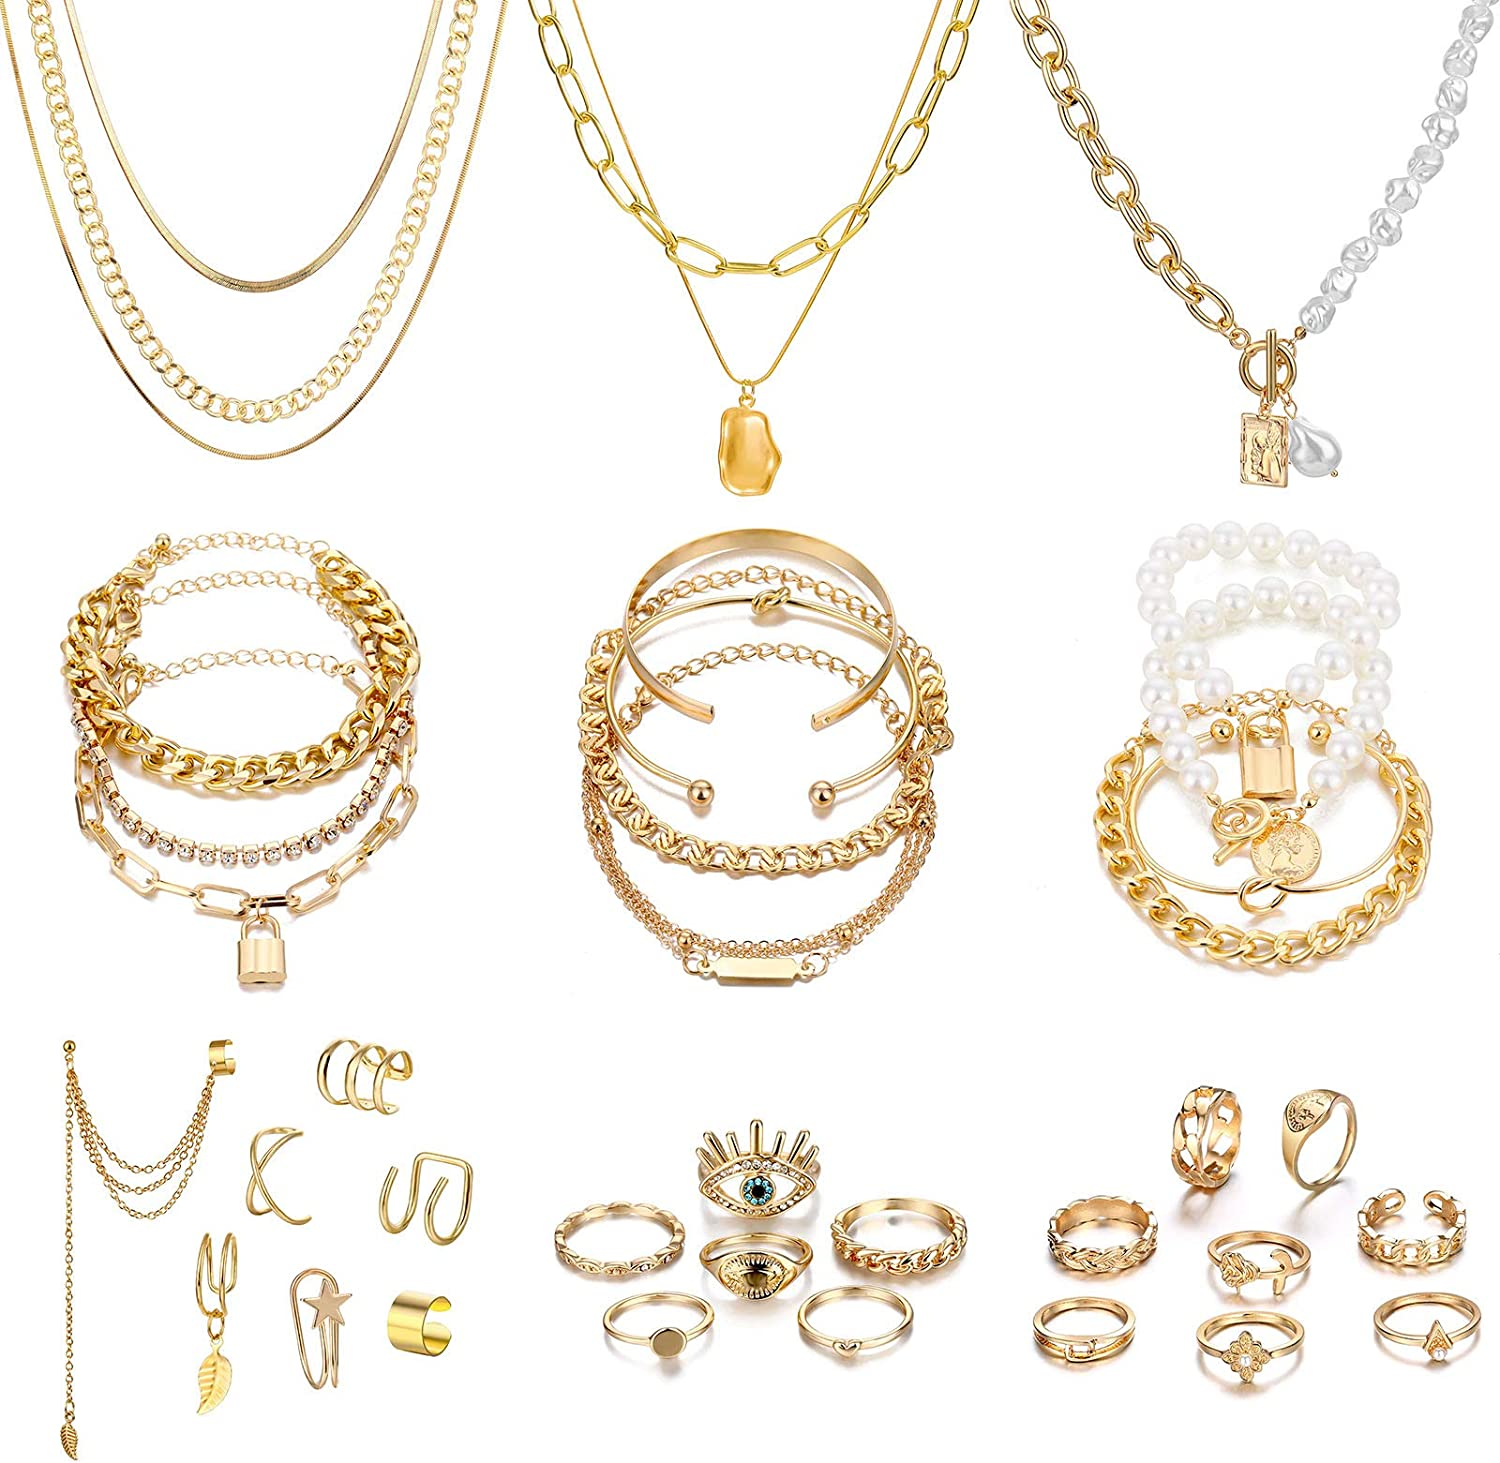 IFKM 36 PCS Gold Plated Jewelry Set with 4 PCS Necklace, 11 PCS Bracelet, 7 PCS Ear Cuffs Earring, 14 Pcs Knuckle Rings for Women Girls Valentine Anniversary Birthday Friendship Gift